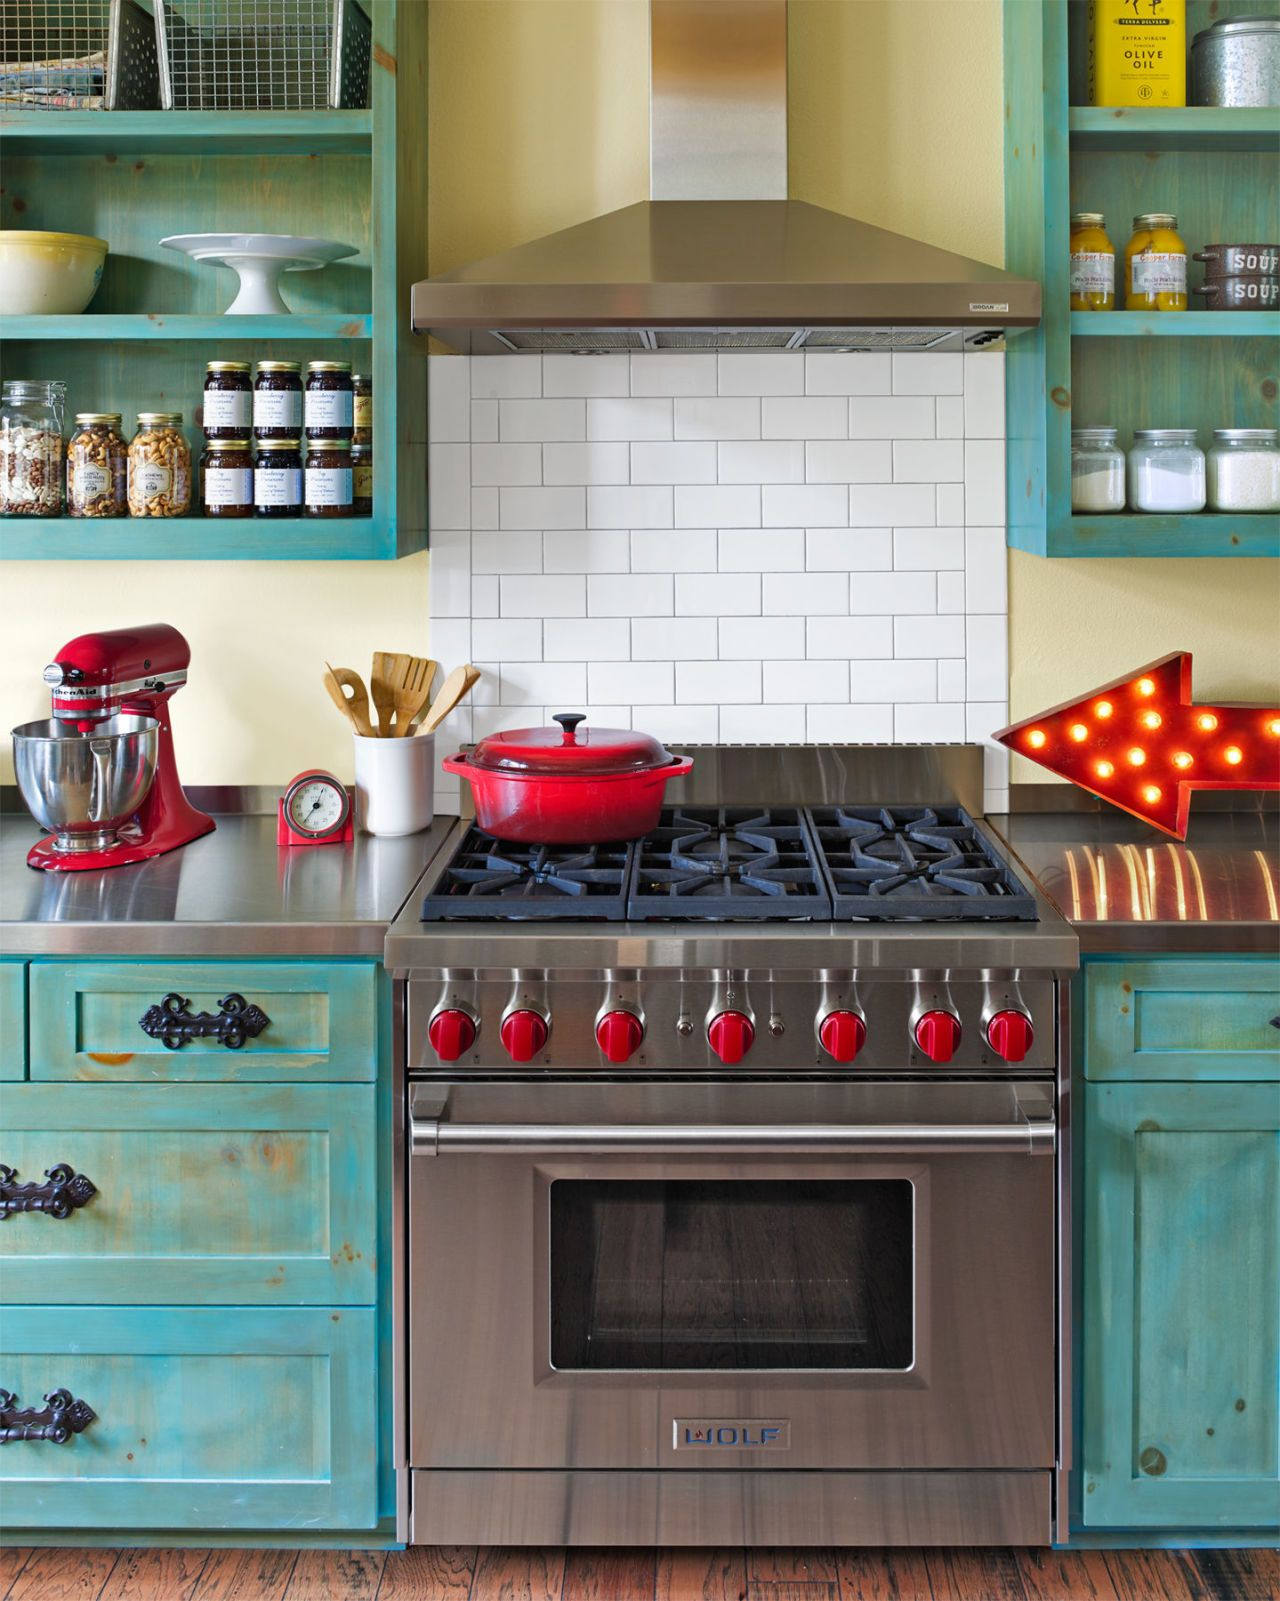 10 ways to add colorful style to your kitchen estilo for Muebles gitanos